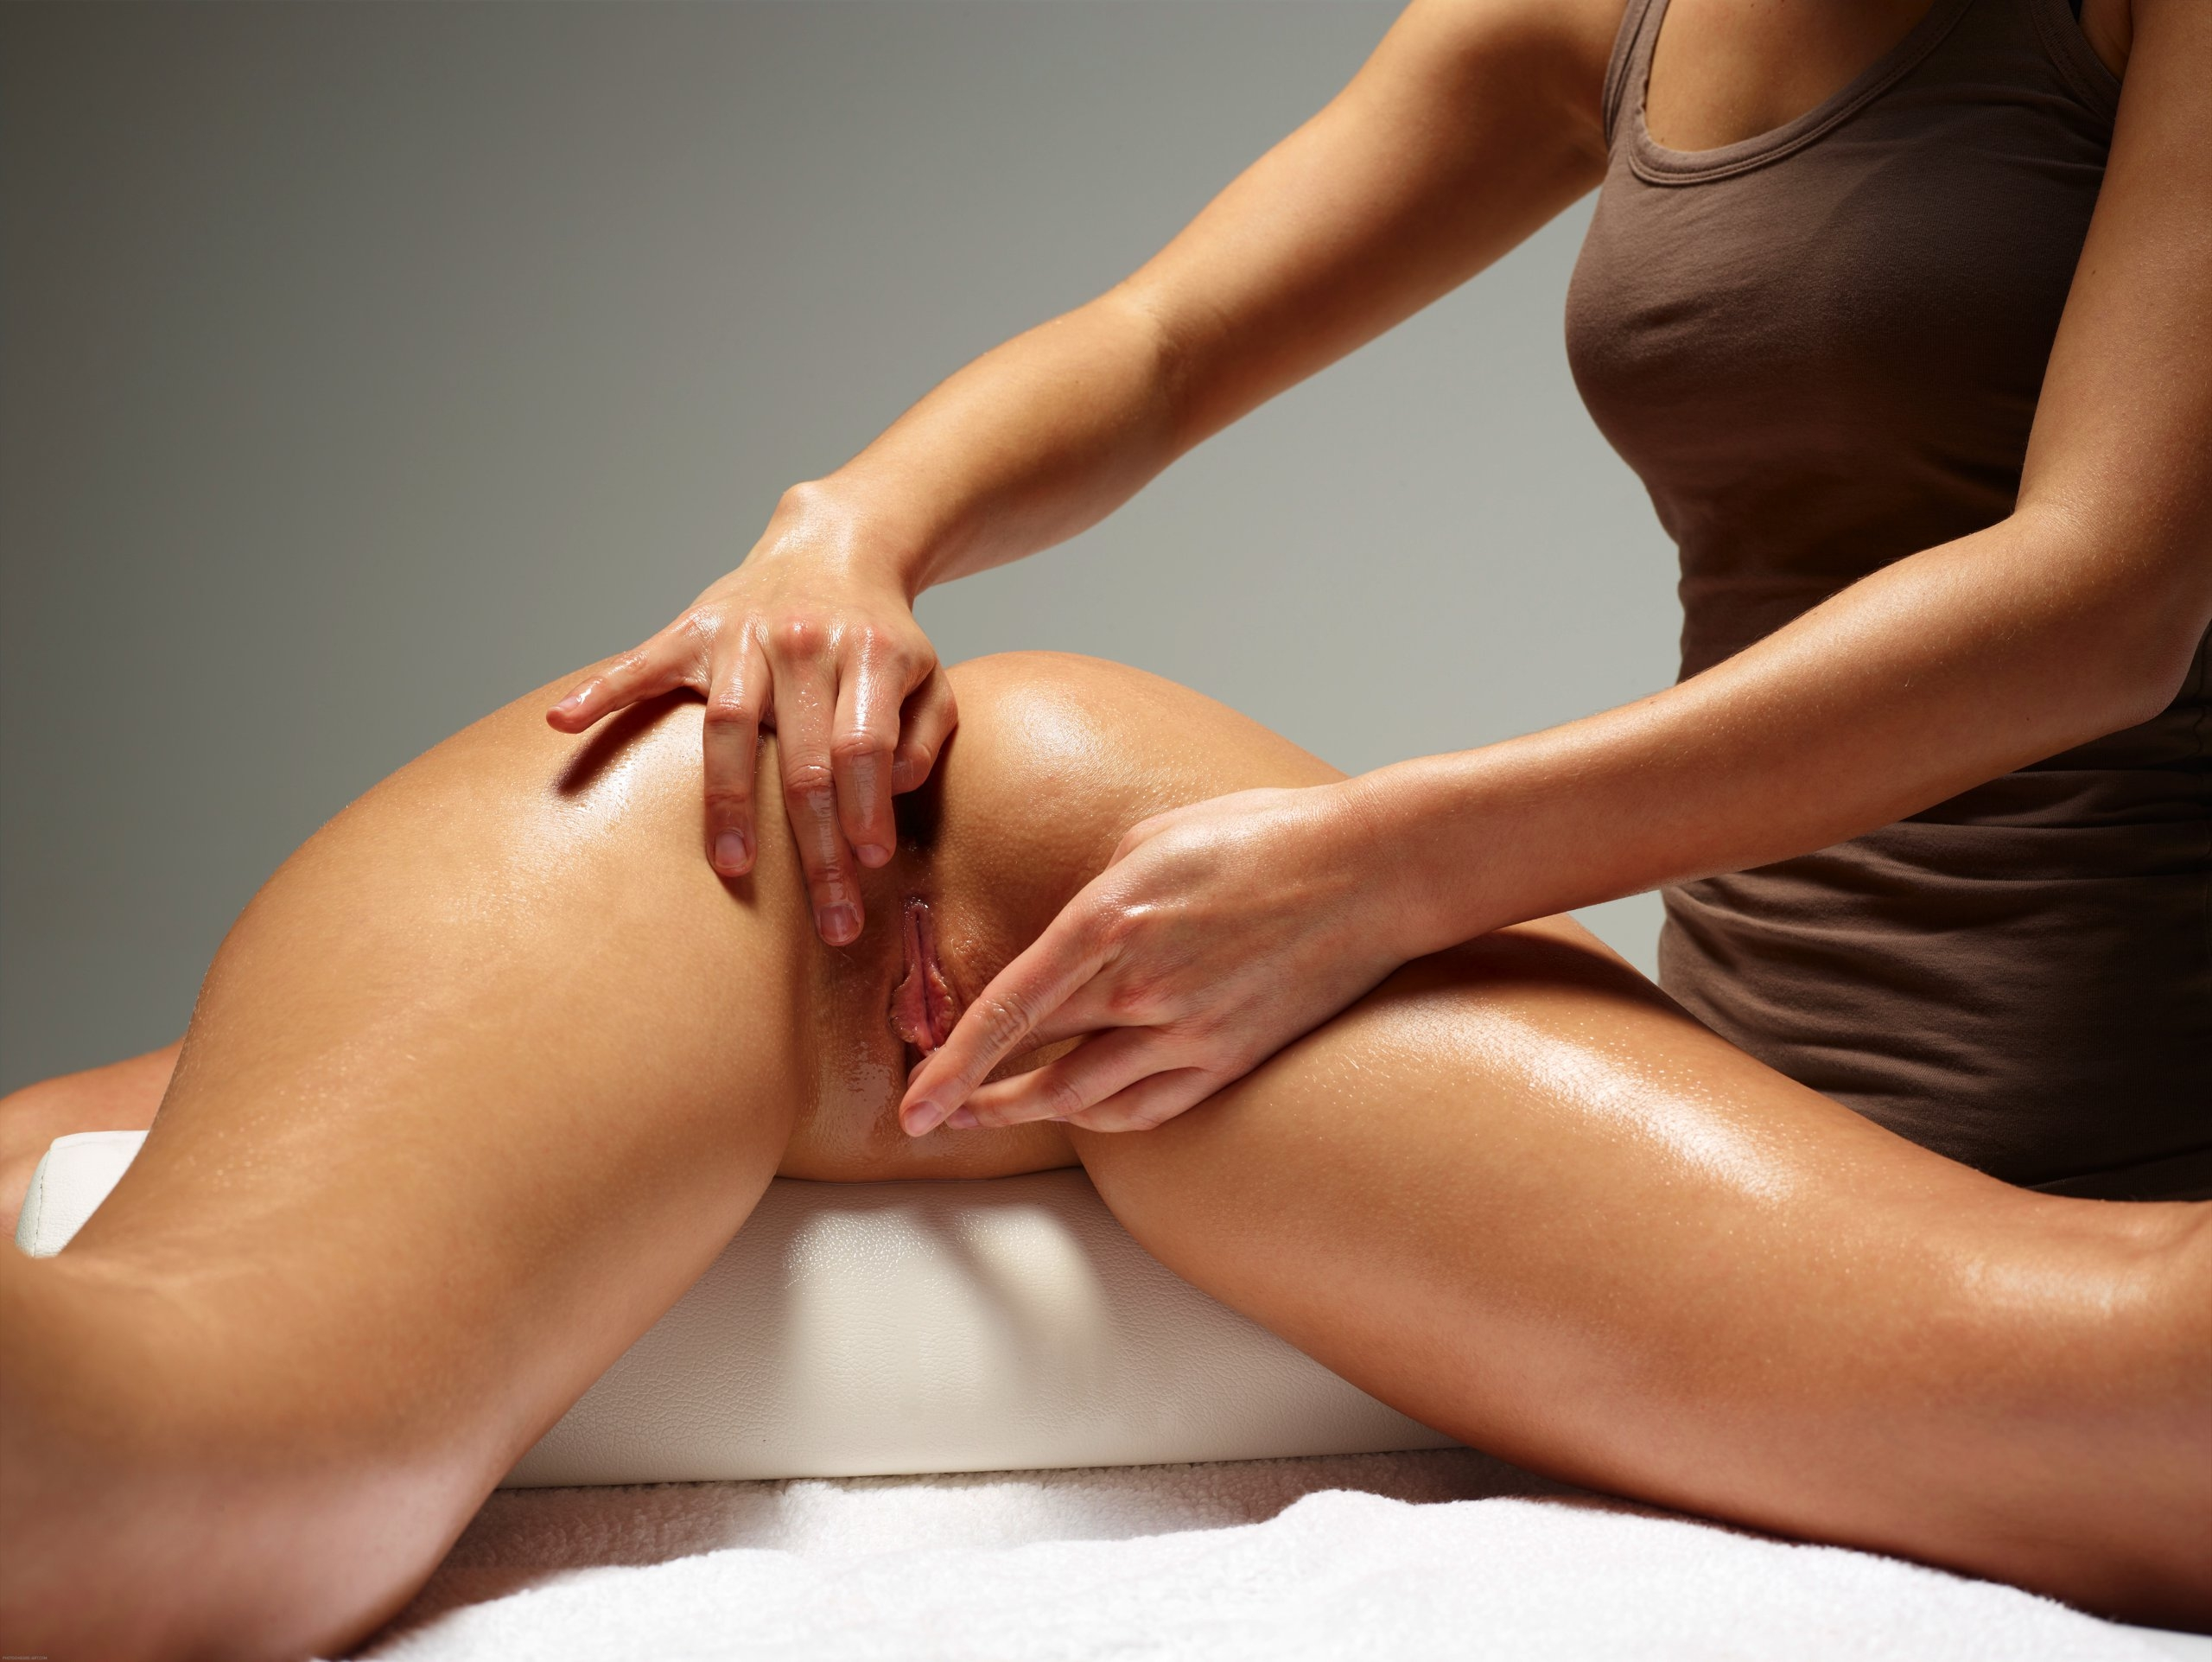 Erotic massage in balch springs texas